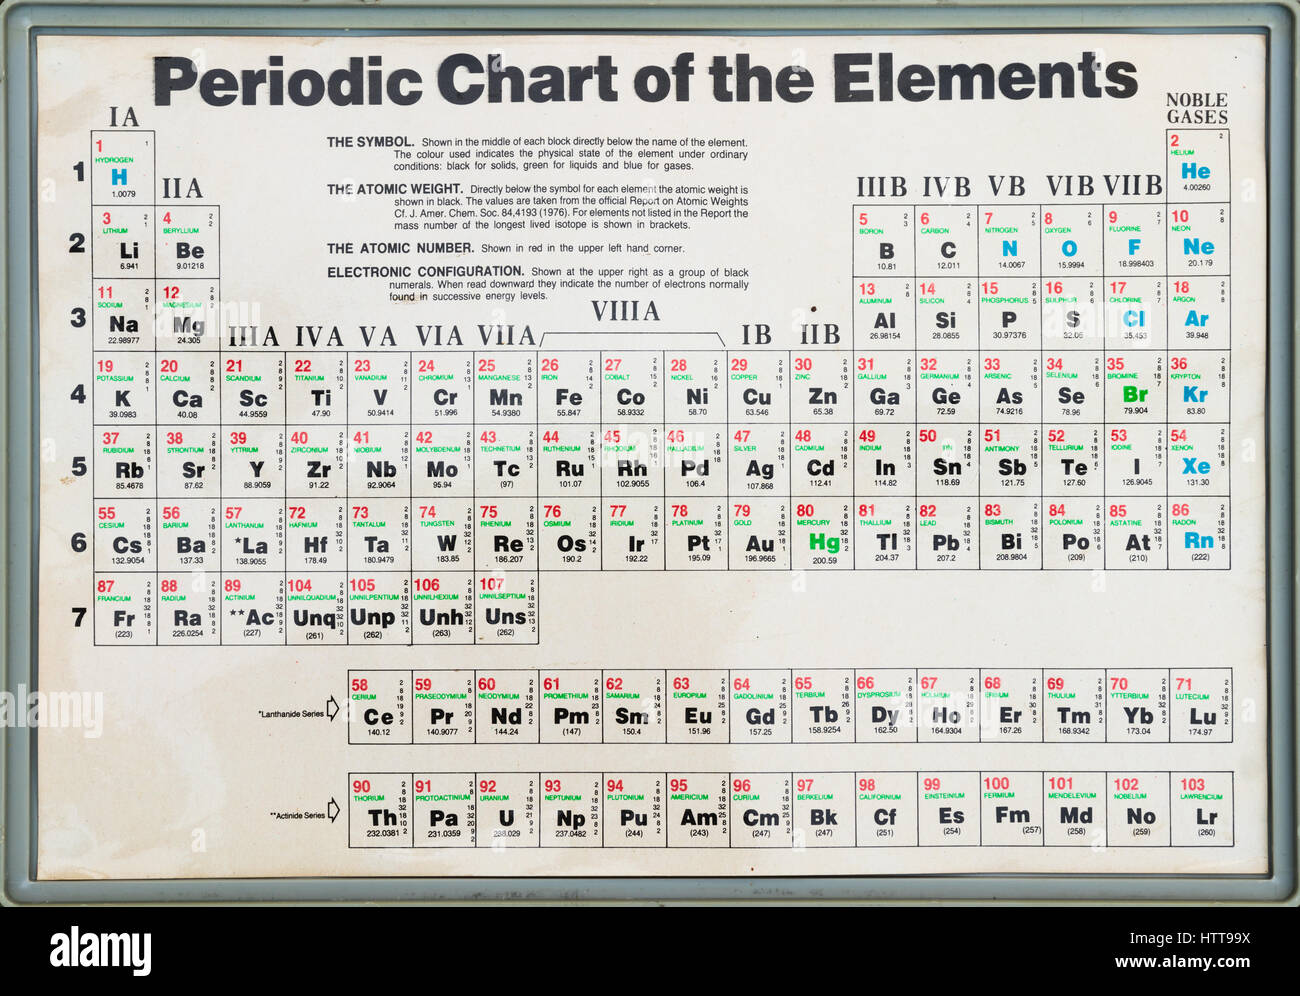 Mendeleev periodic table stock photos mendeleev periodic table old periodic table of elements showing the symbol atomic weight atomic mass and urtaz Image collections